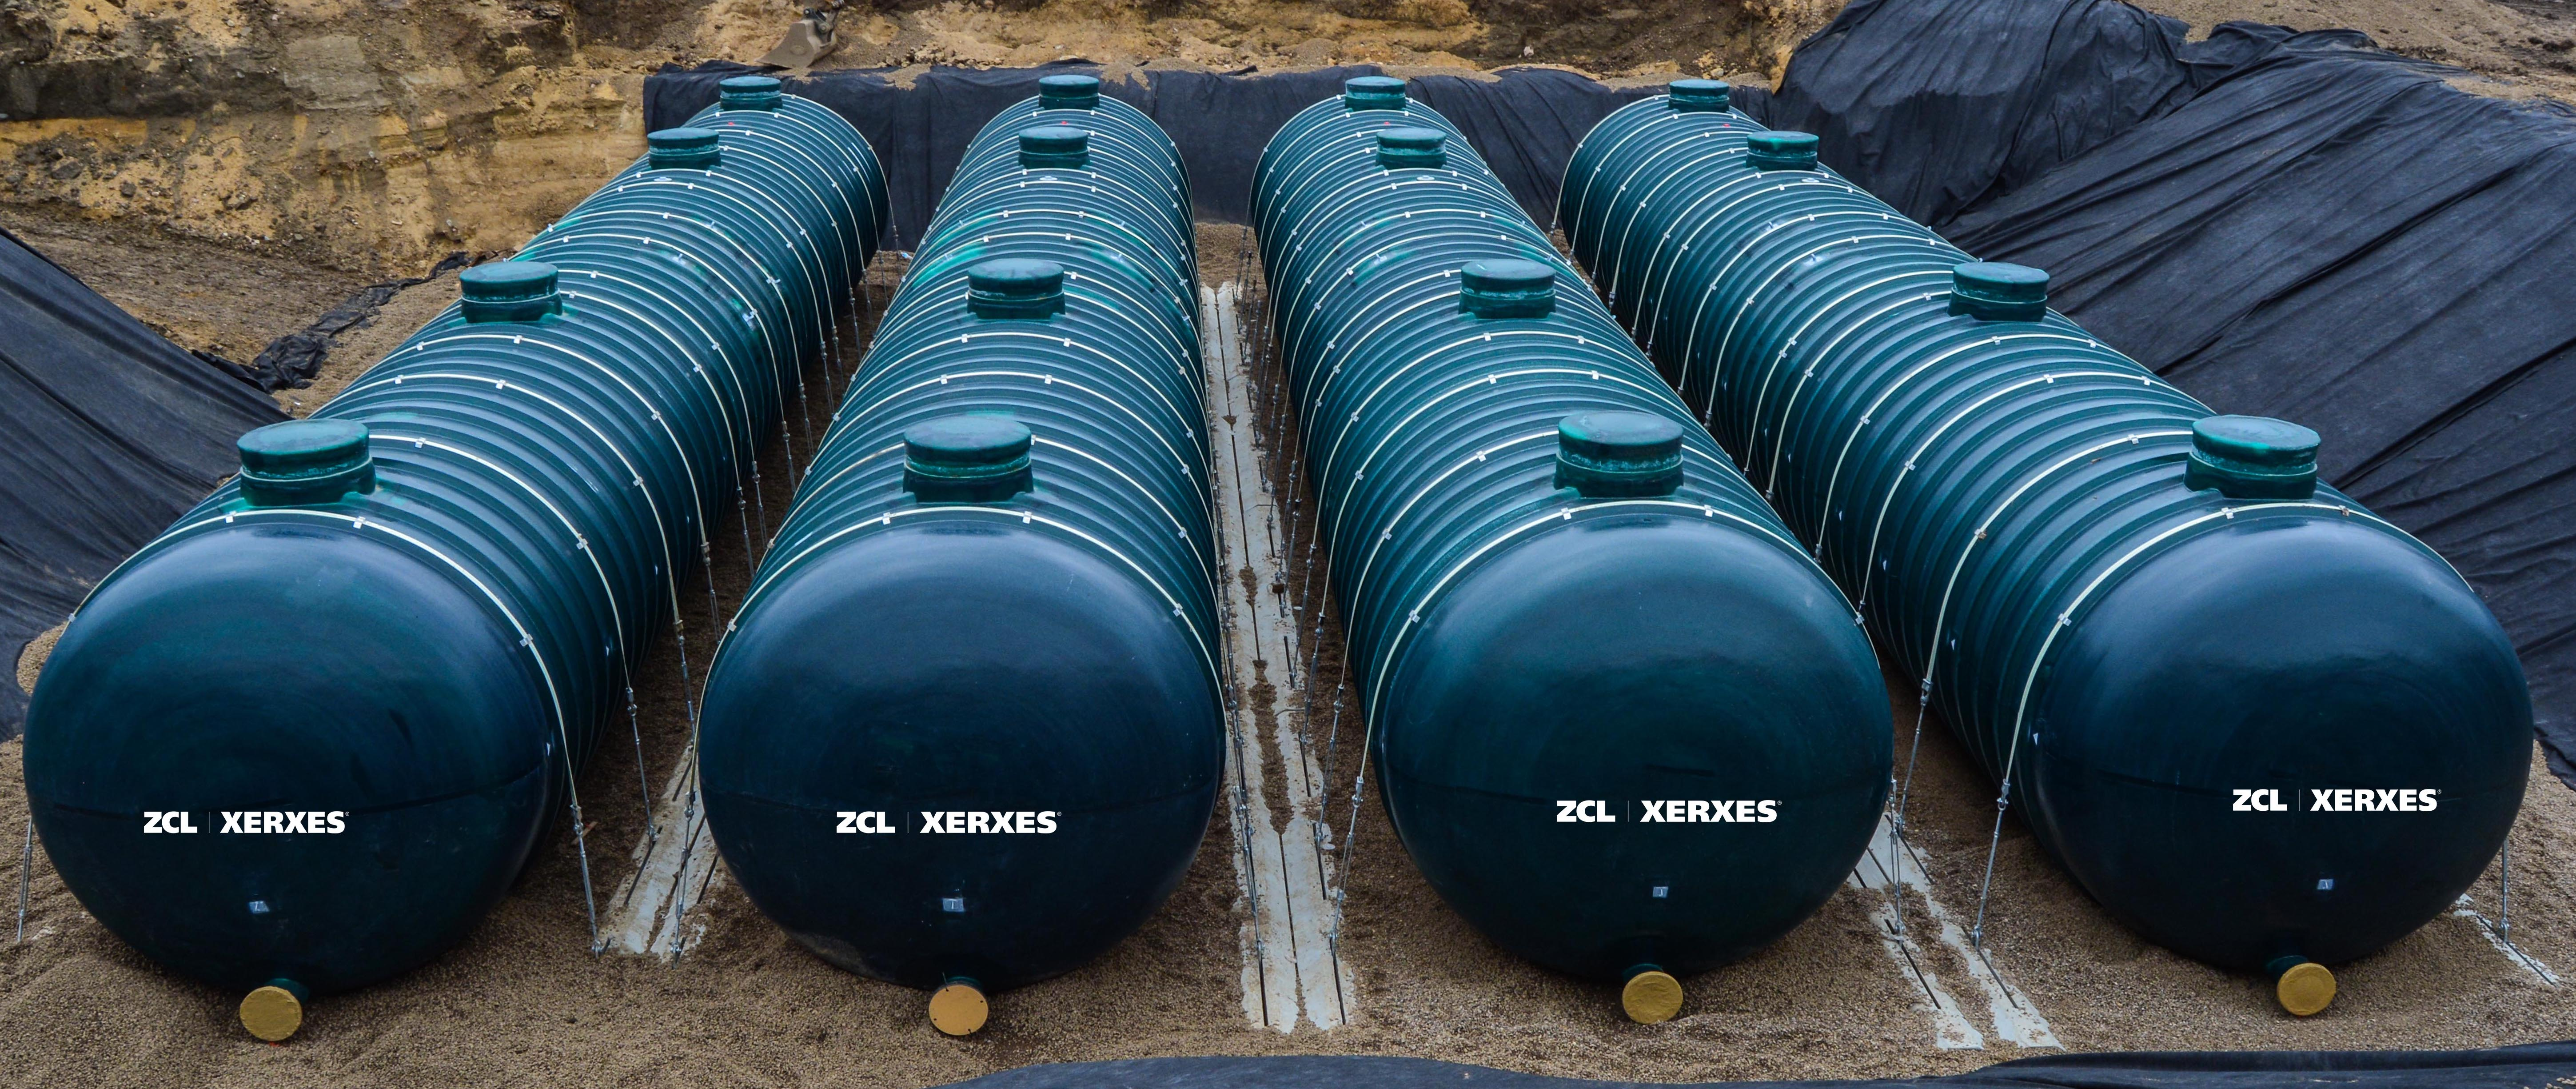 Cisterns Water Storage Tanks